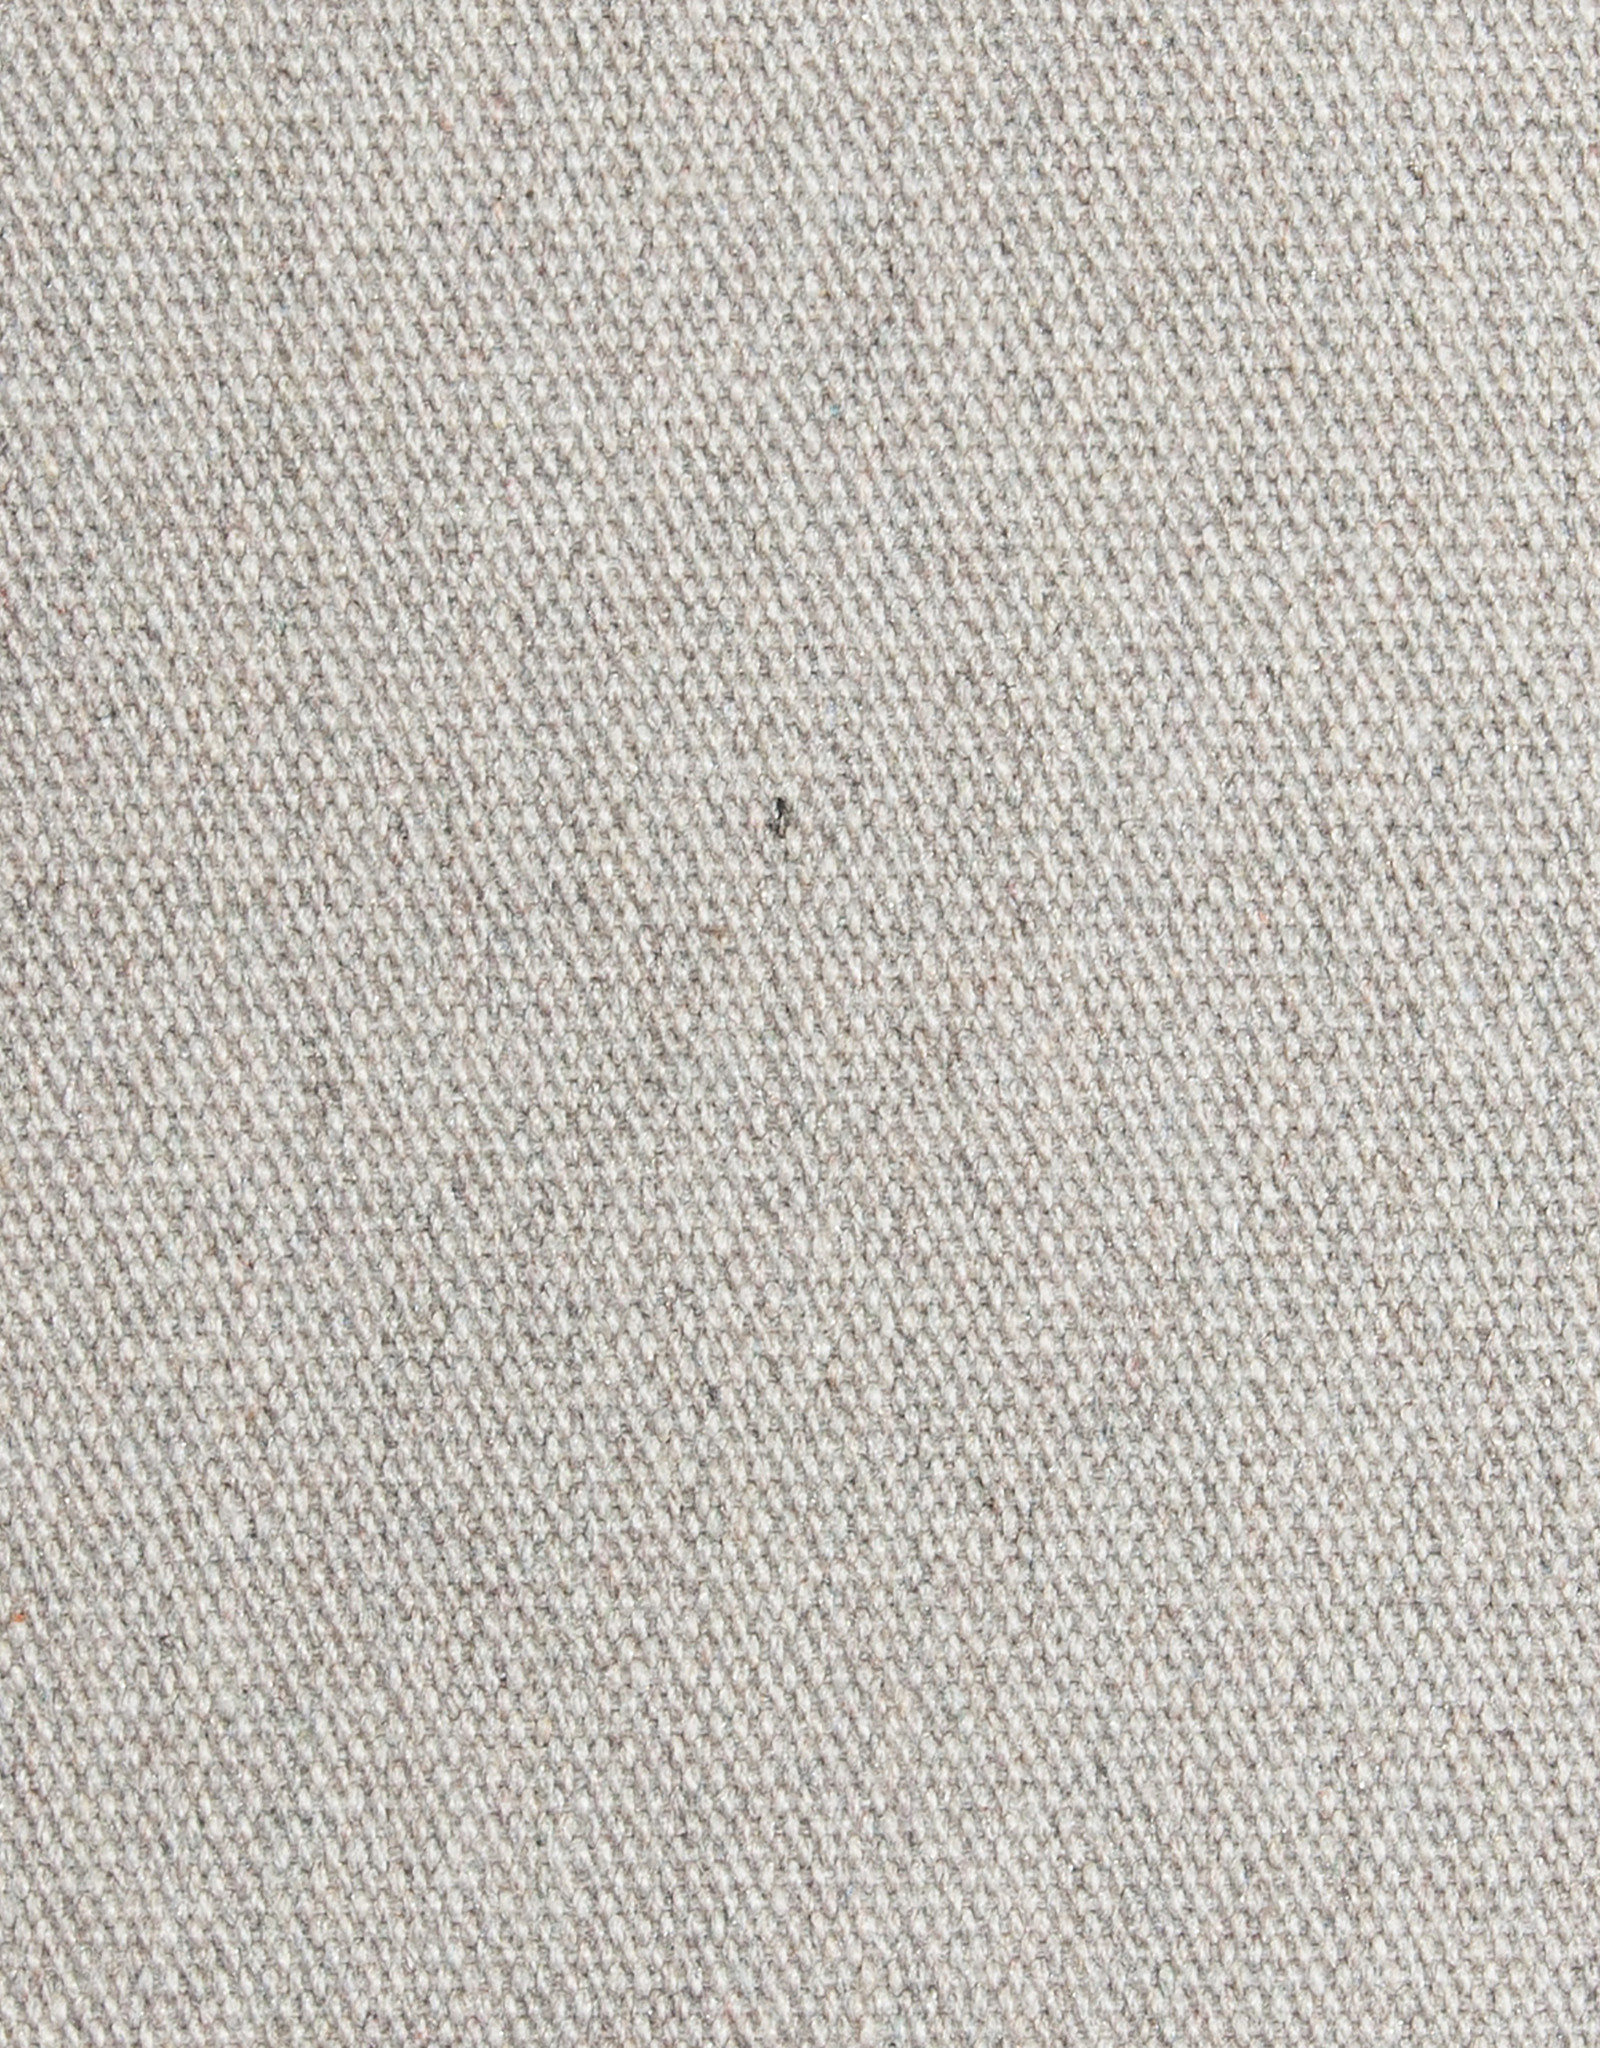 Bryck Bryck - couch 3 zit - Ecocollection -  Light grey